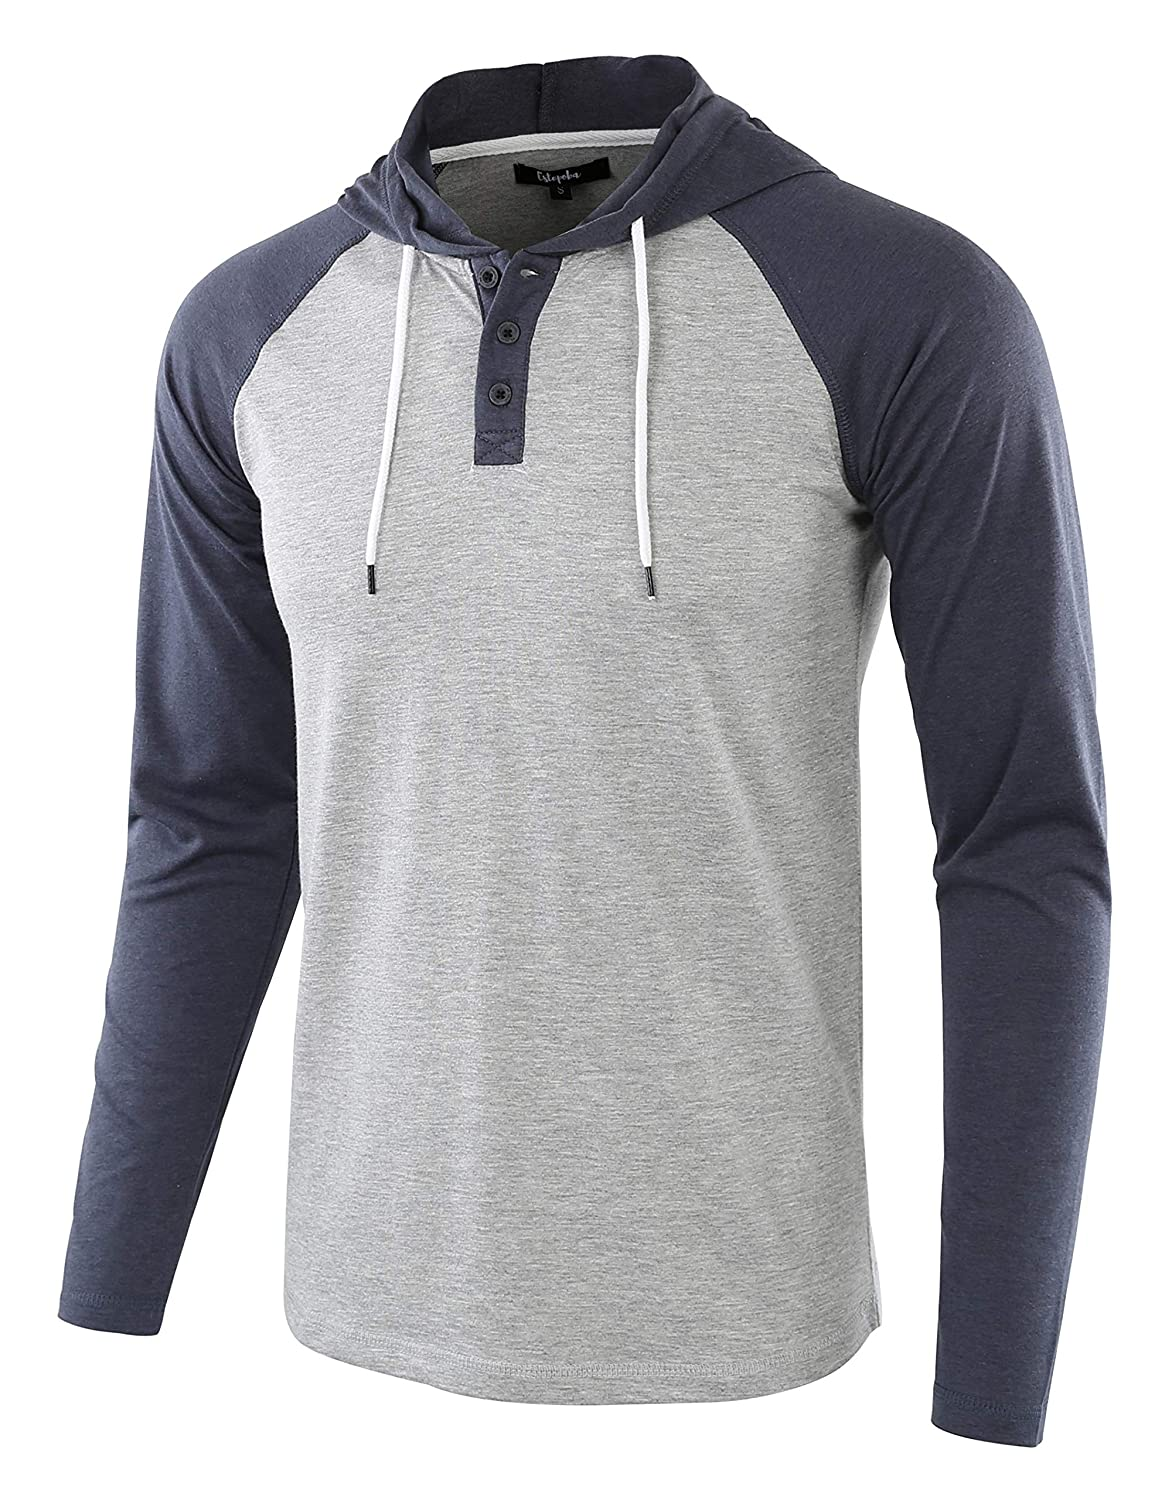 Estepoba Mens Athletic Fit Lightweight Henley Hooded Pullover Jersey Shirt